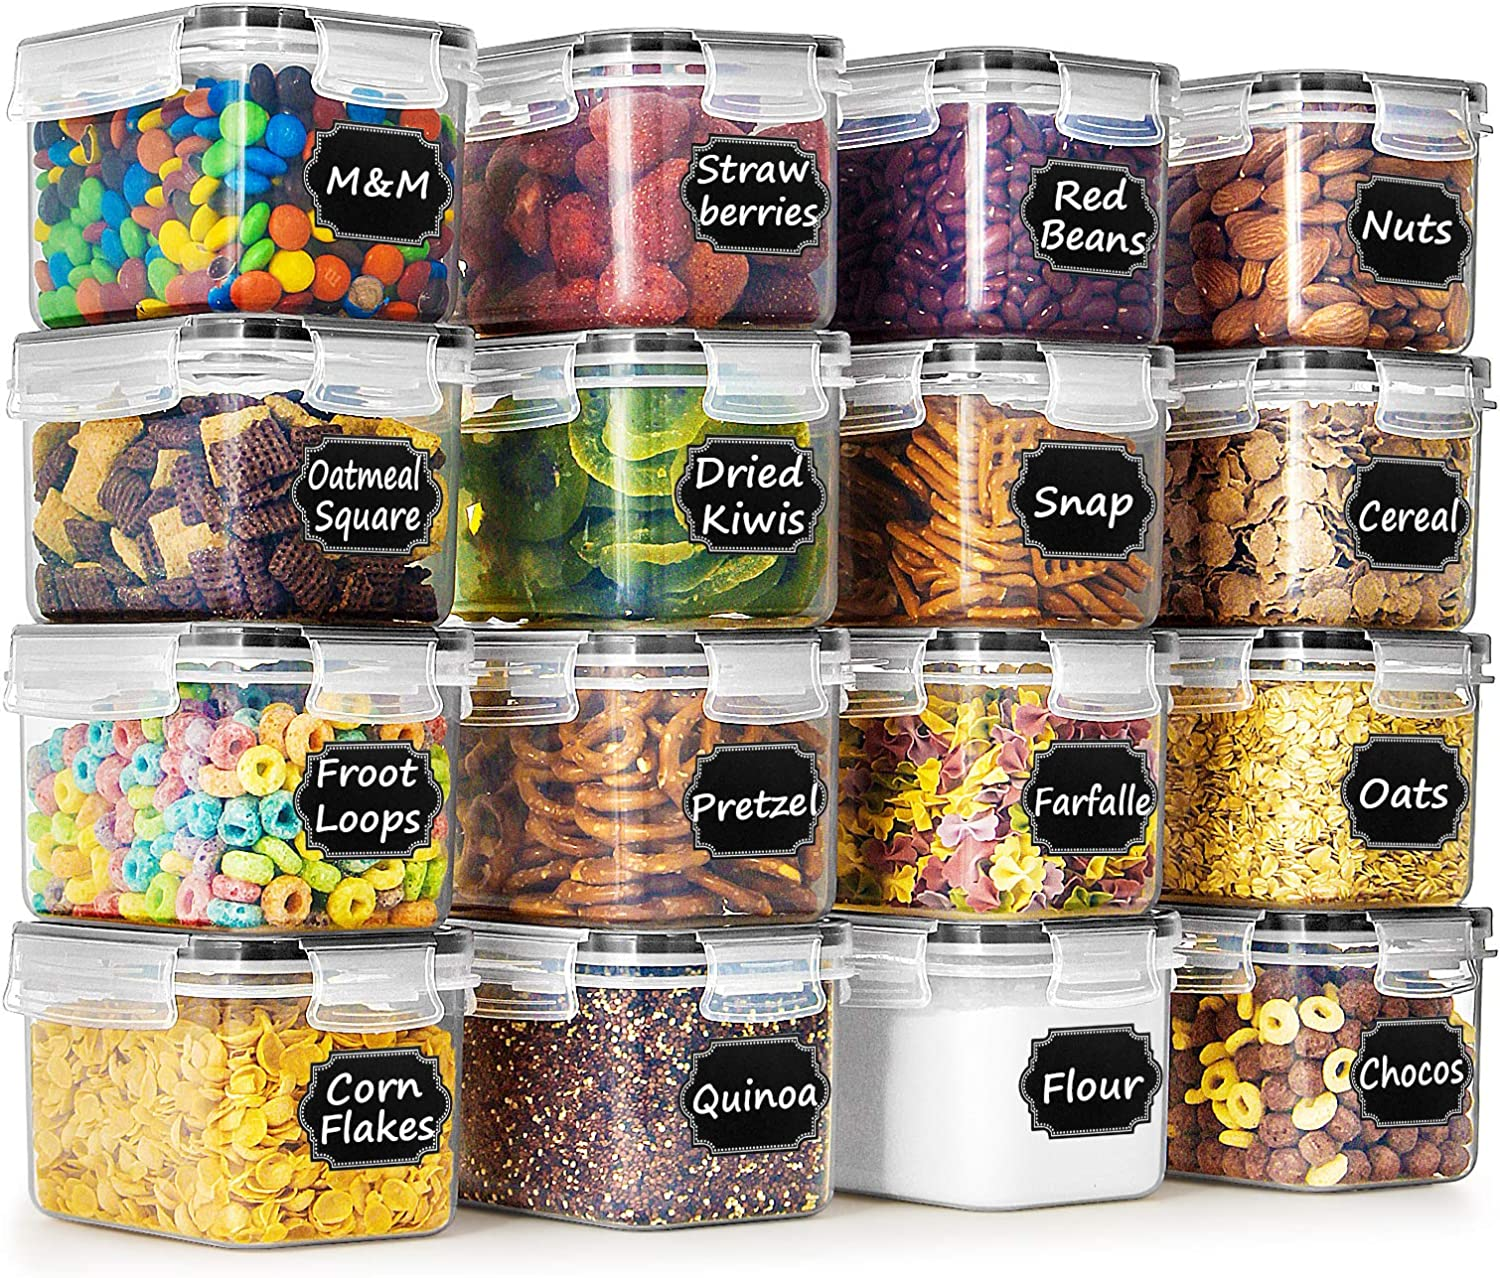 Airtight Food Storage Containers - Wildone Cereal & Dry Food Storage Container Set of 16 [0.8L /3.38 Cups] for Sugar, Flour and Baking Supplies, Leak-proof & BPA Free, with 20 Labels & 1 Marker